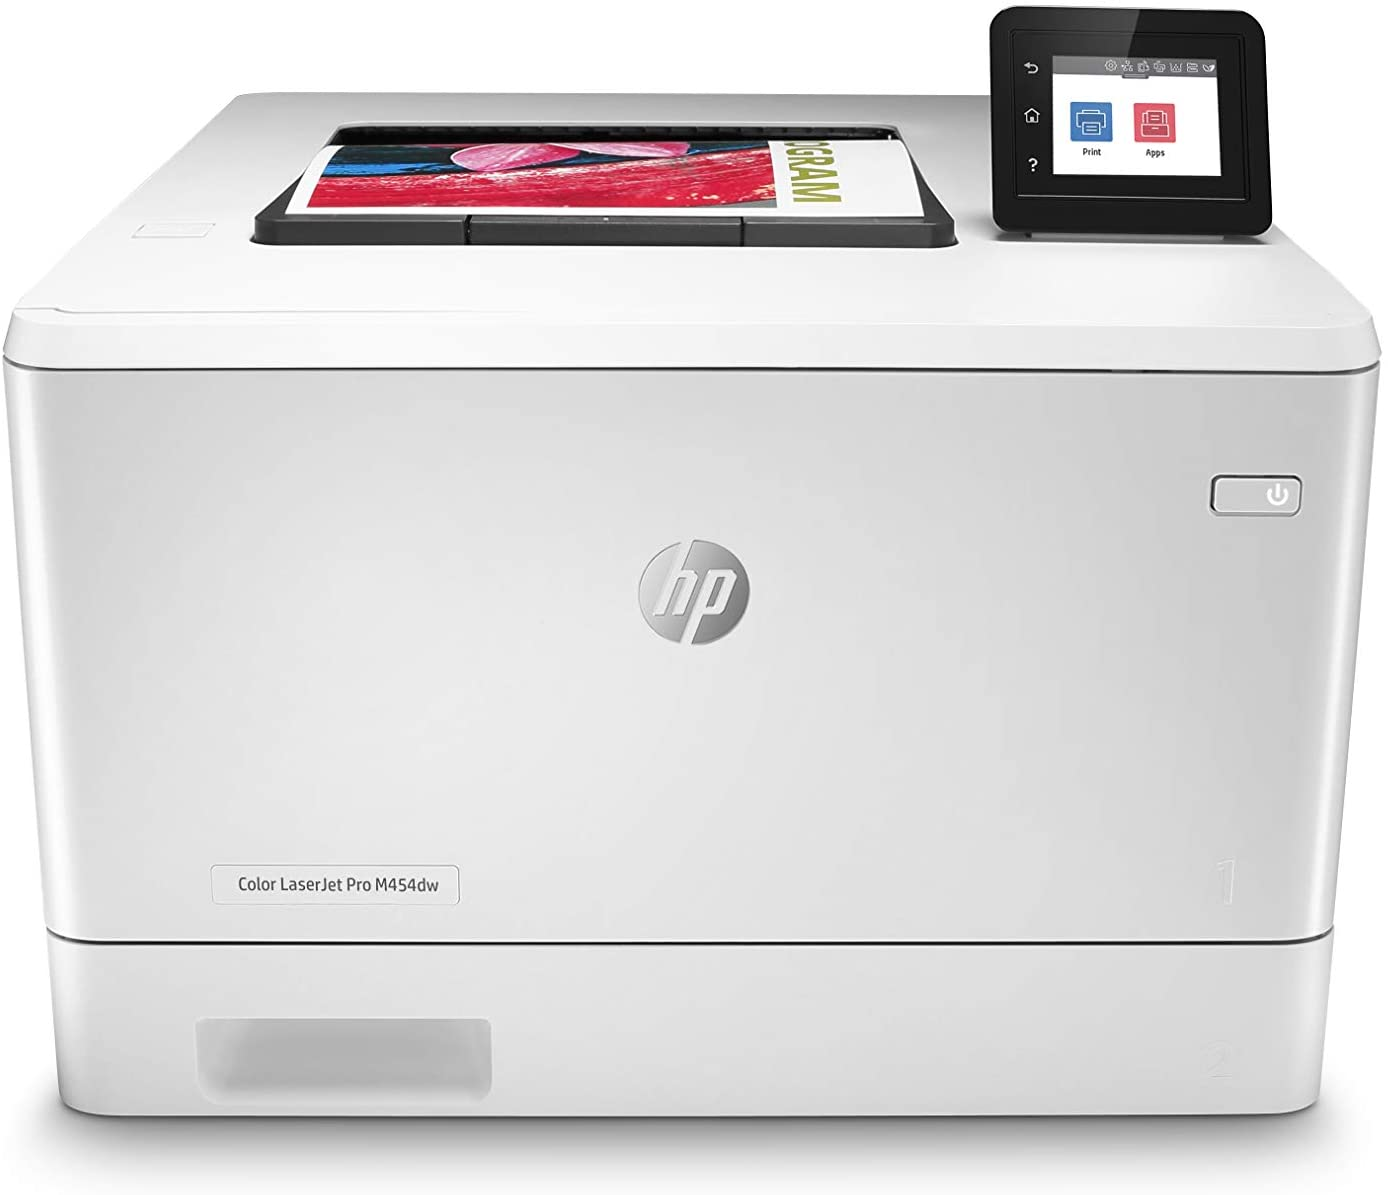 HP Color LaserJet Pro M454dw (A4) Colour Laser Duplex+Wireless Printer reviews uk